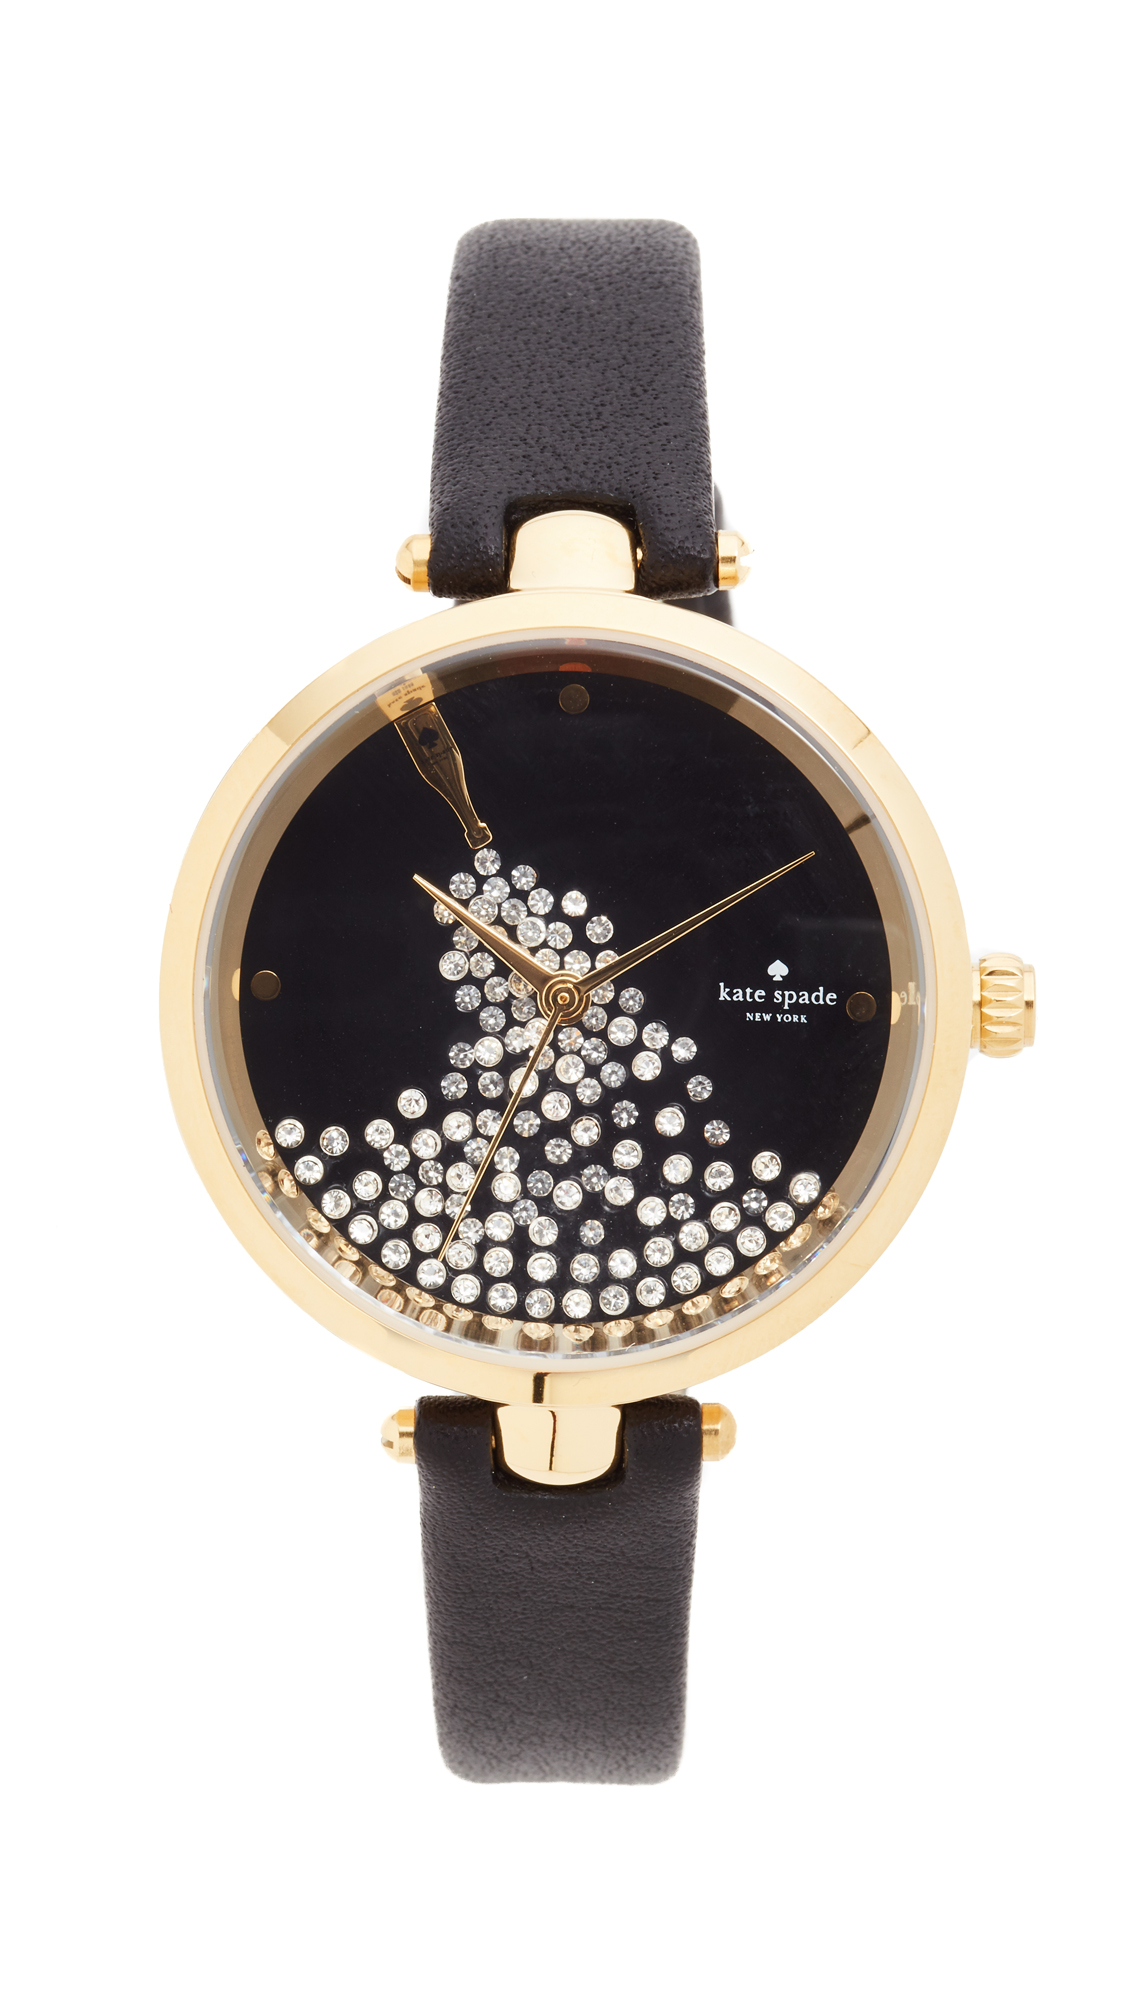 Kate Spade New York Holland Novelty Watch - Black/Gold at Shopbop